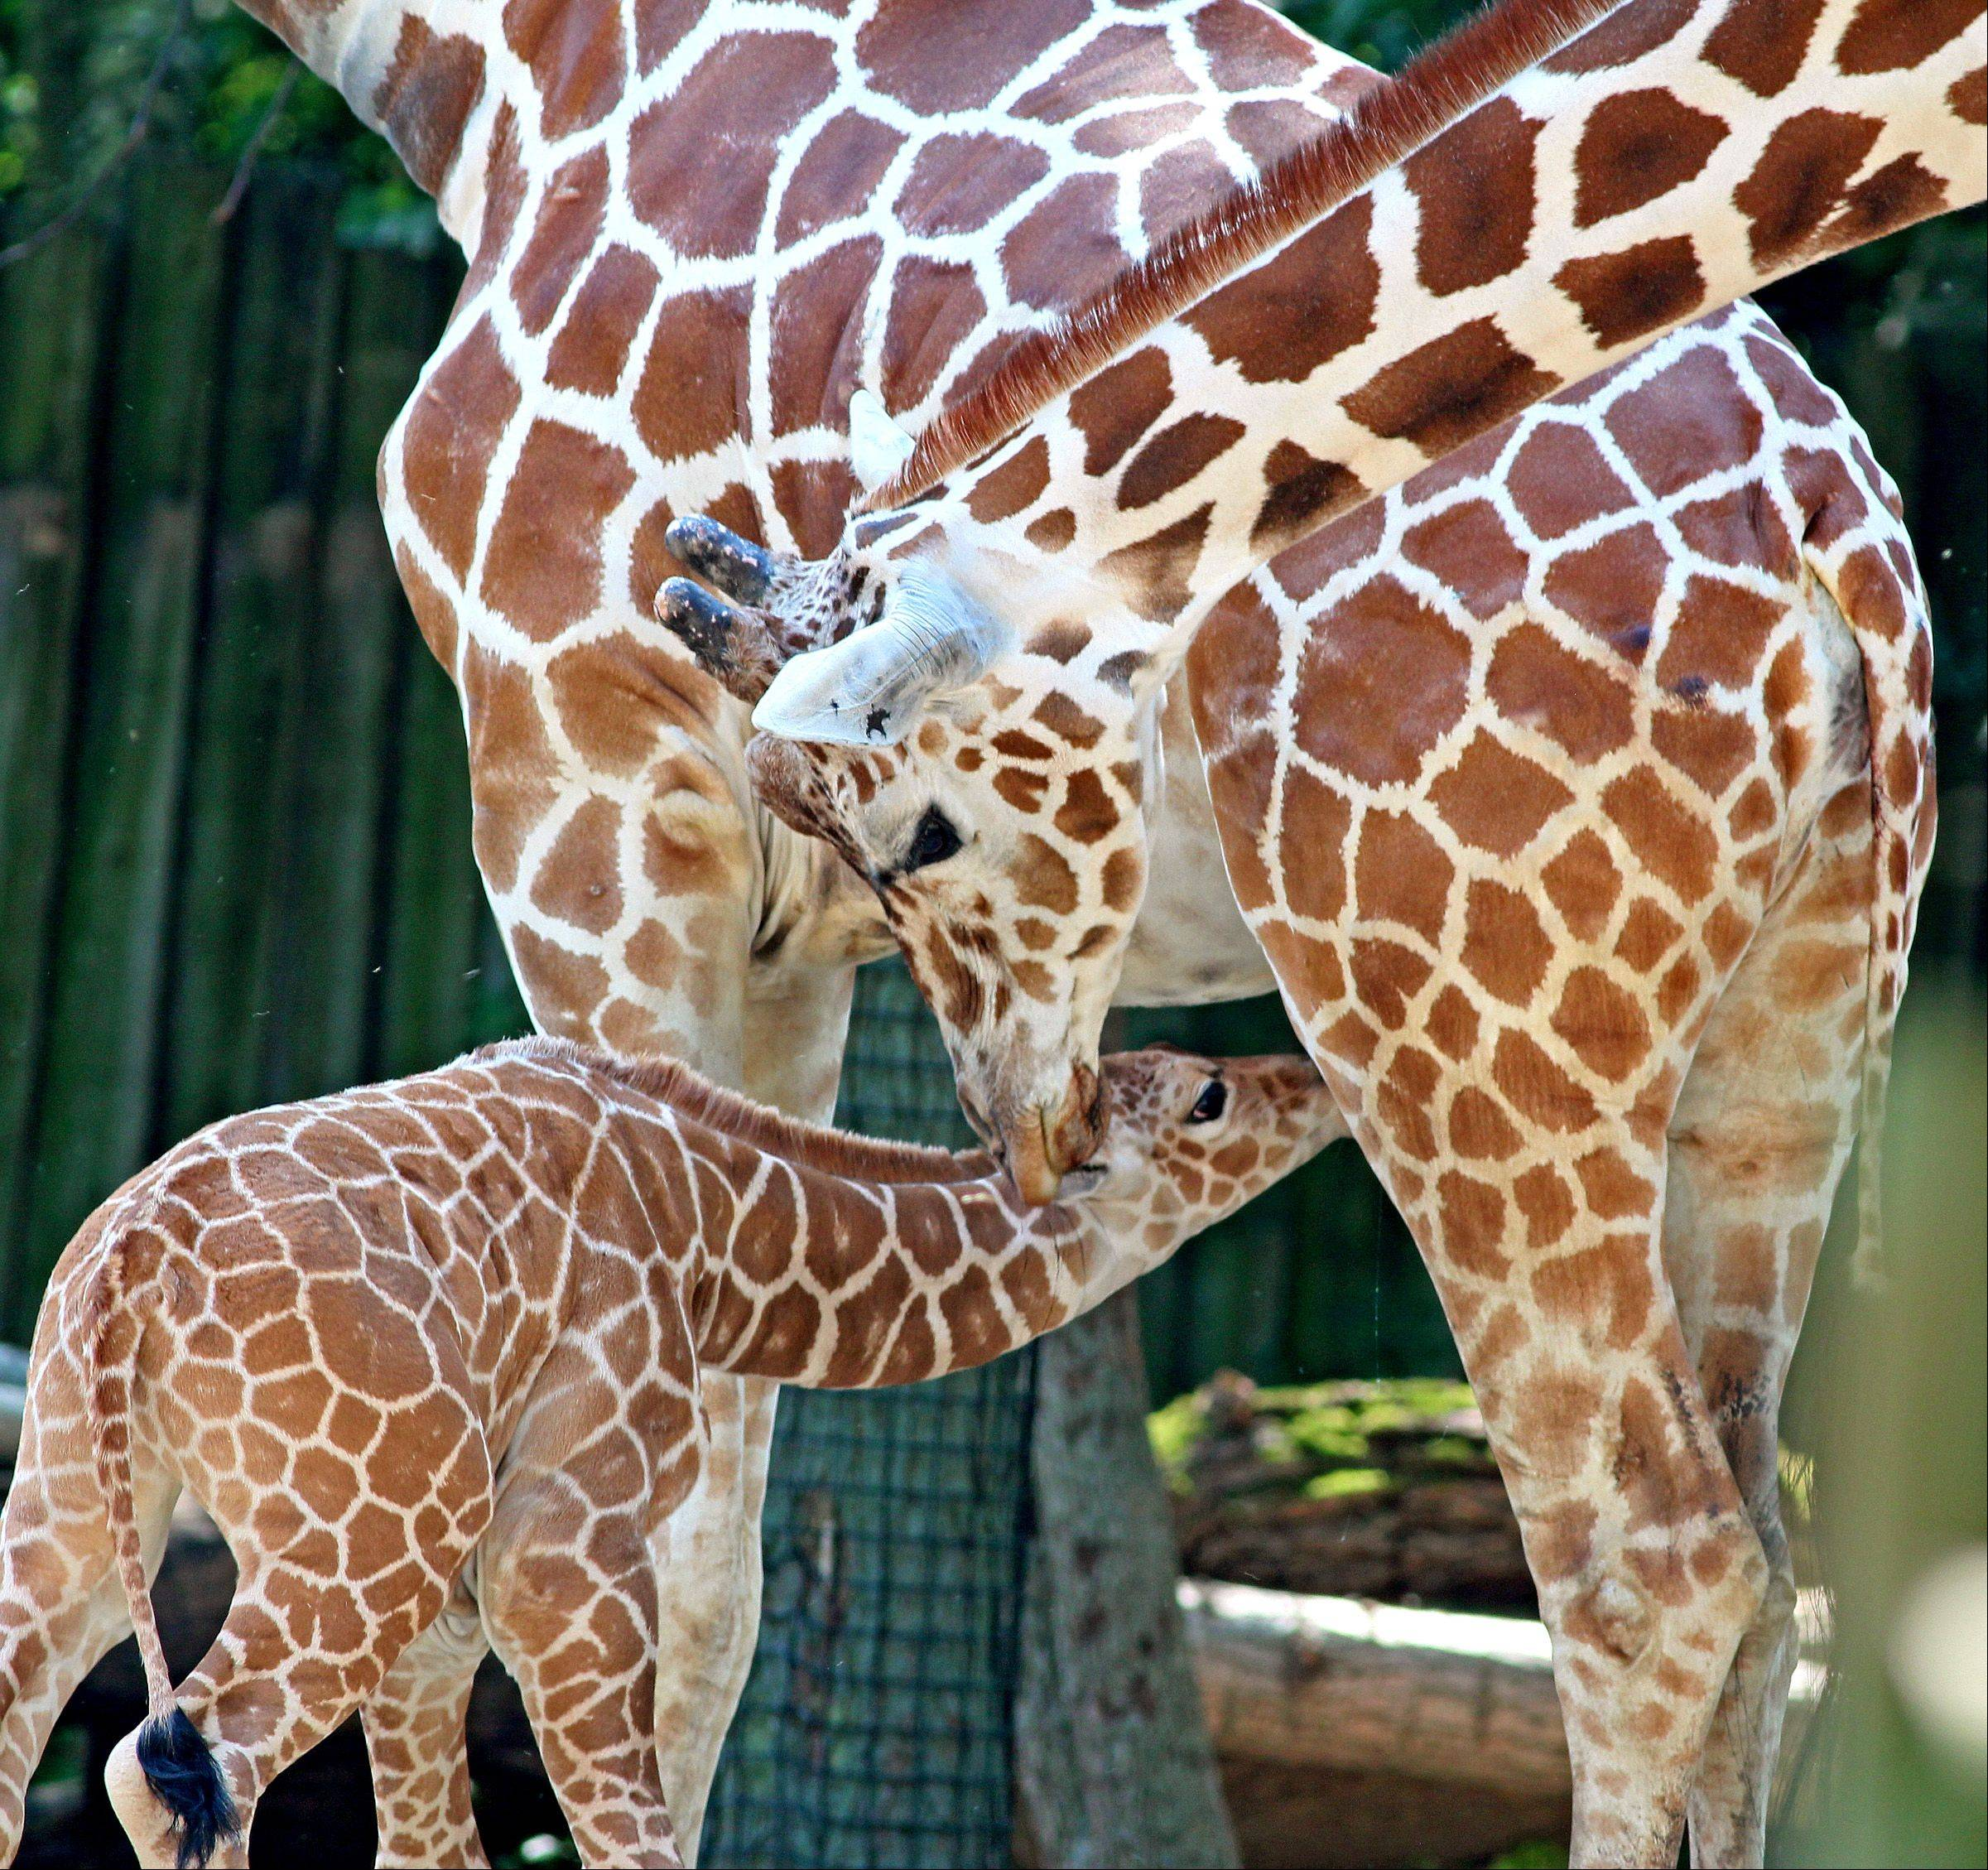 A mother giraffe nursing its newborn young at Brookfield Zoo last week.